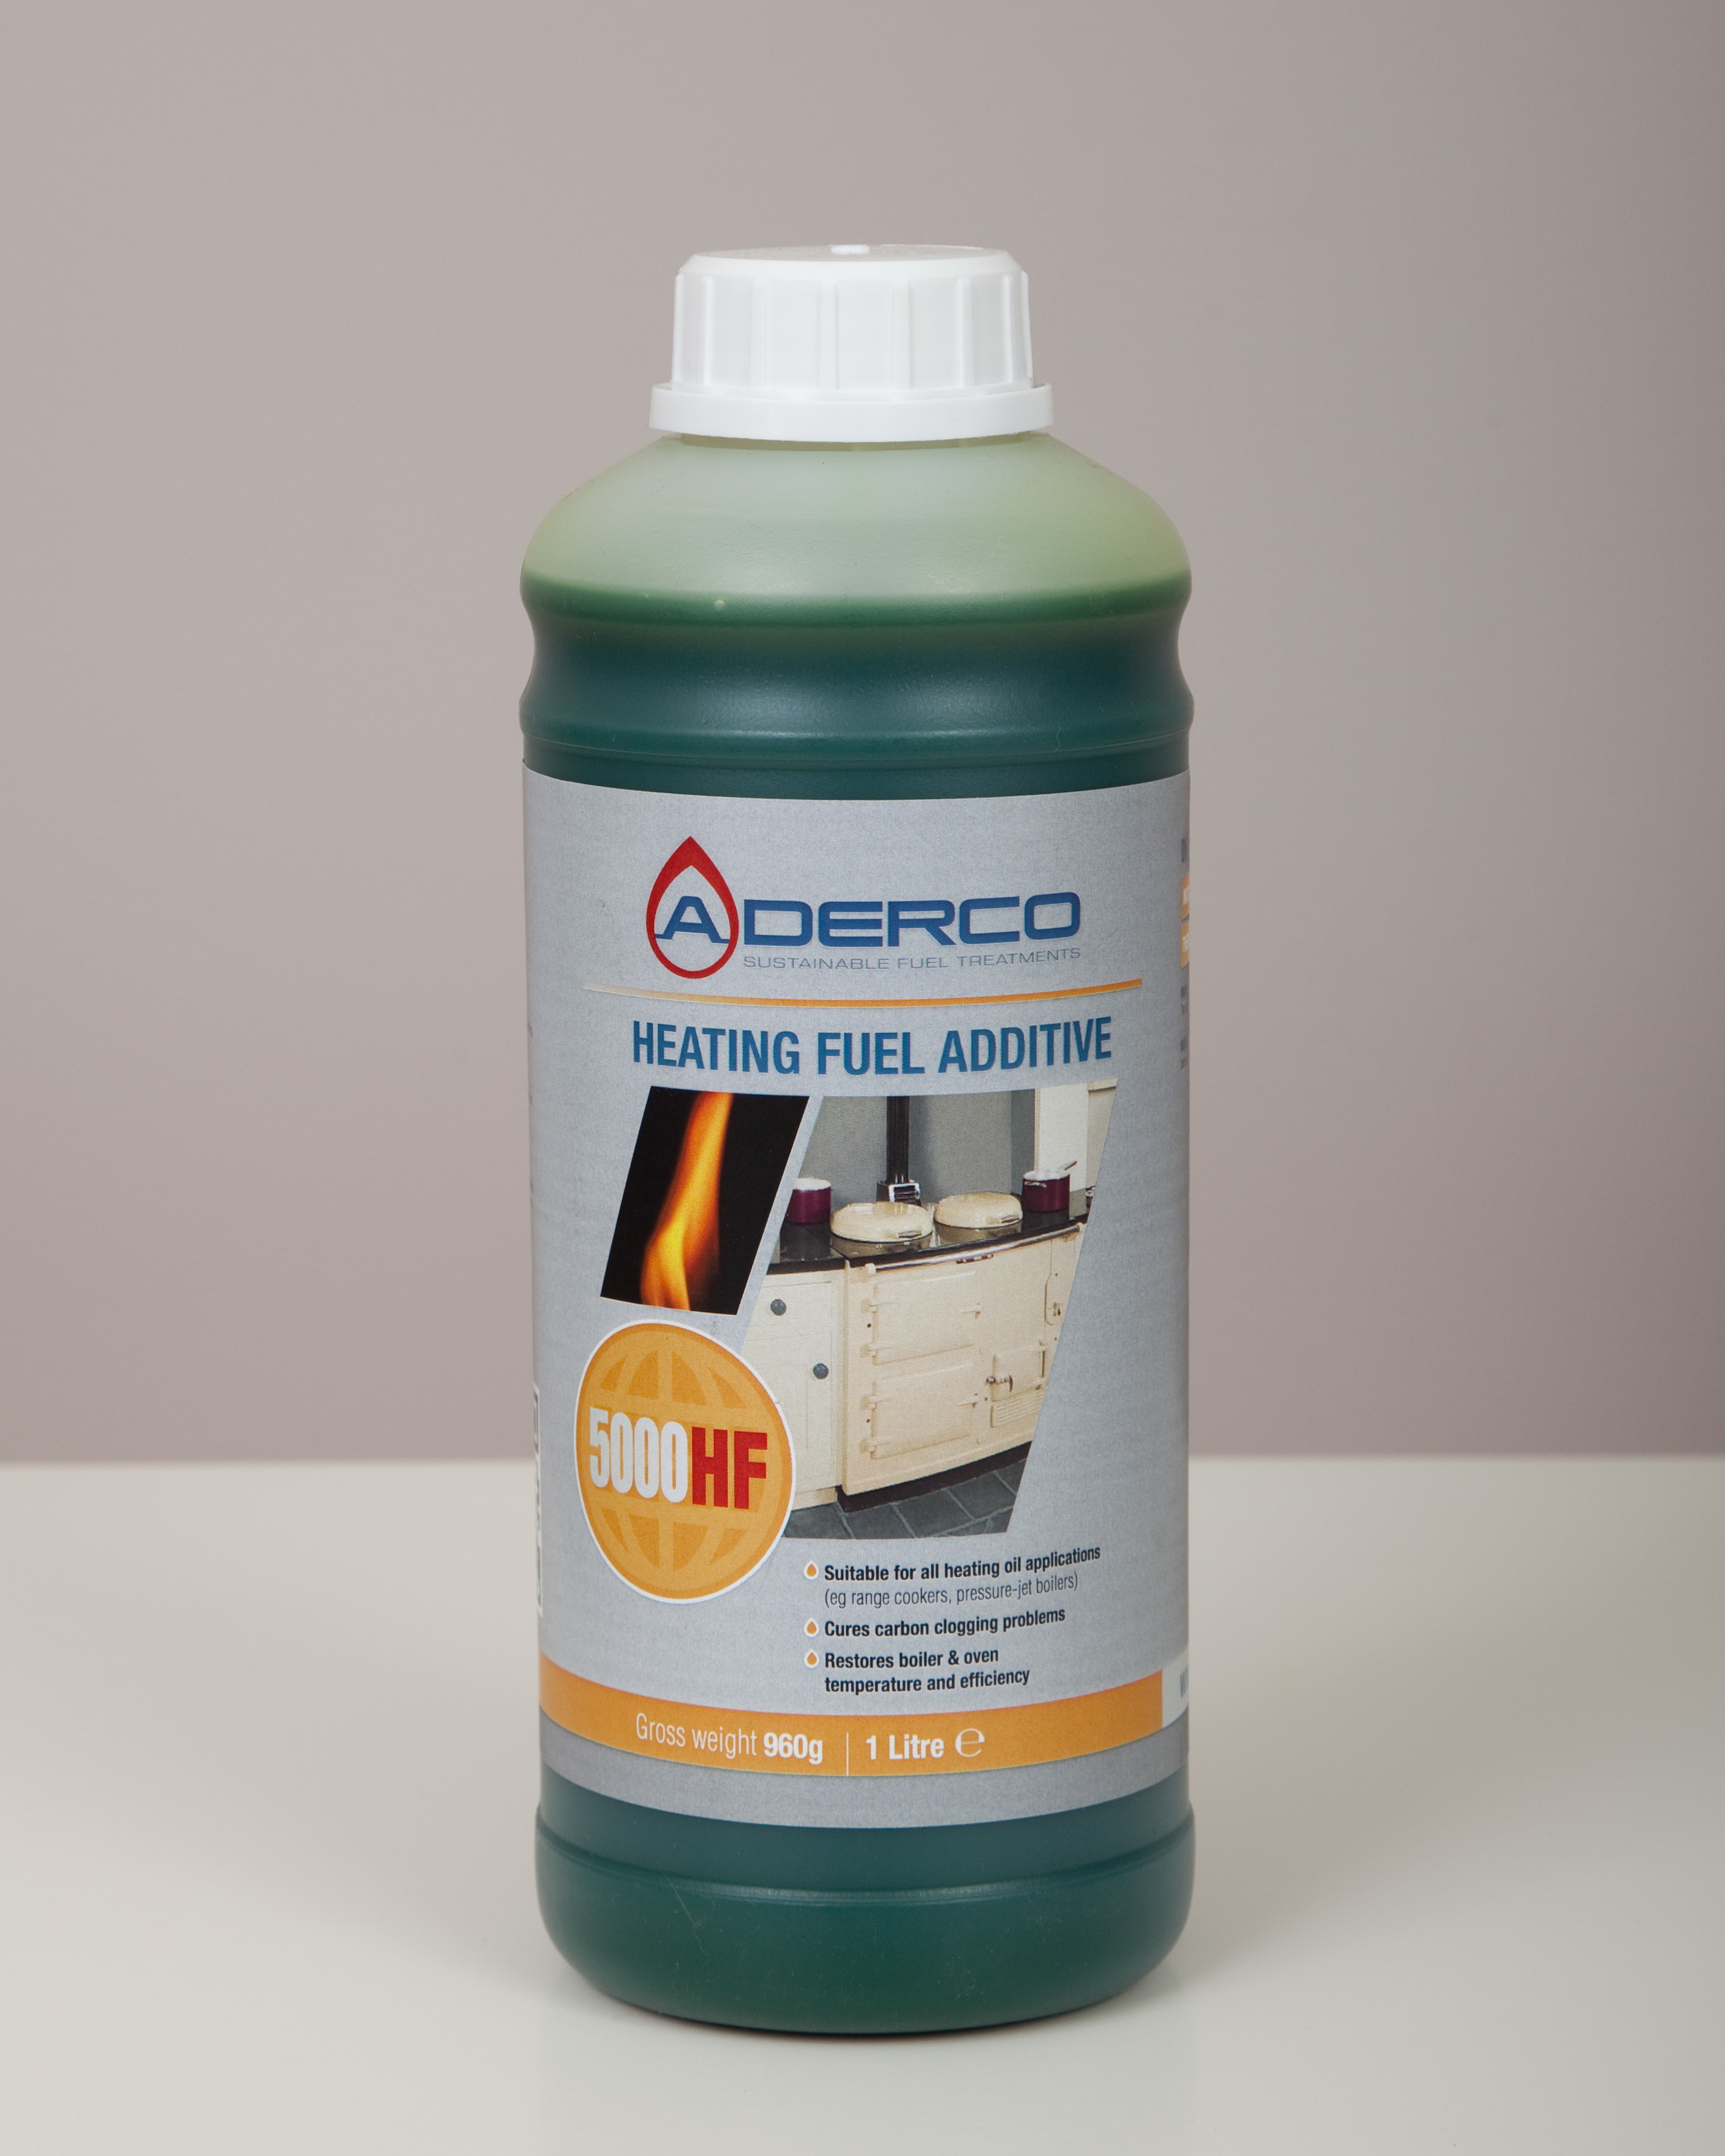 ADERCO 5000 Heating Fuel Additive 12 x 1 litre bottles (box) AD5000-CART